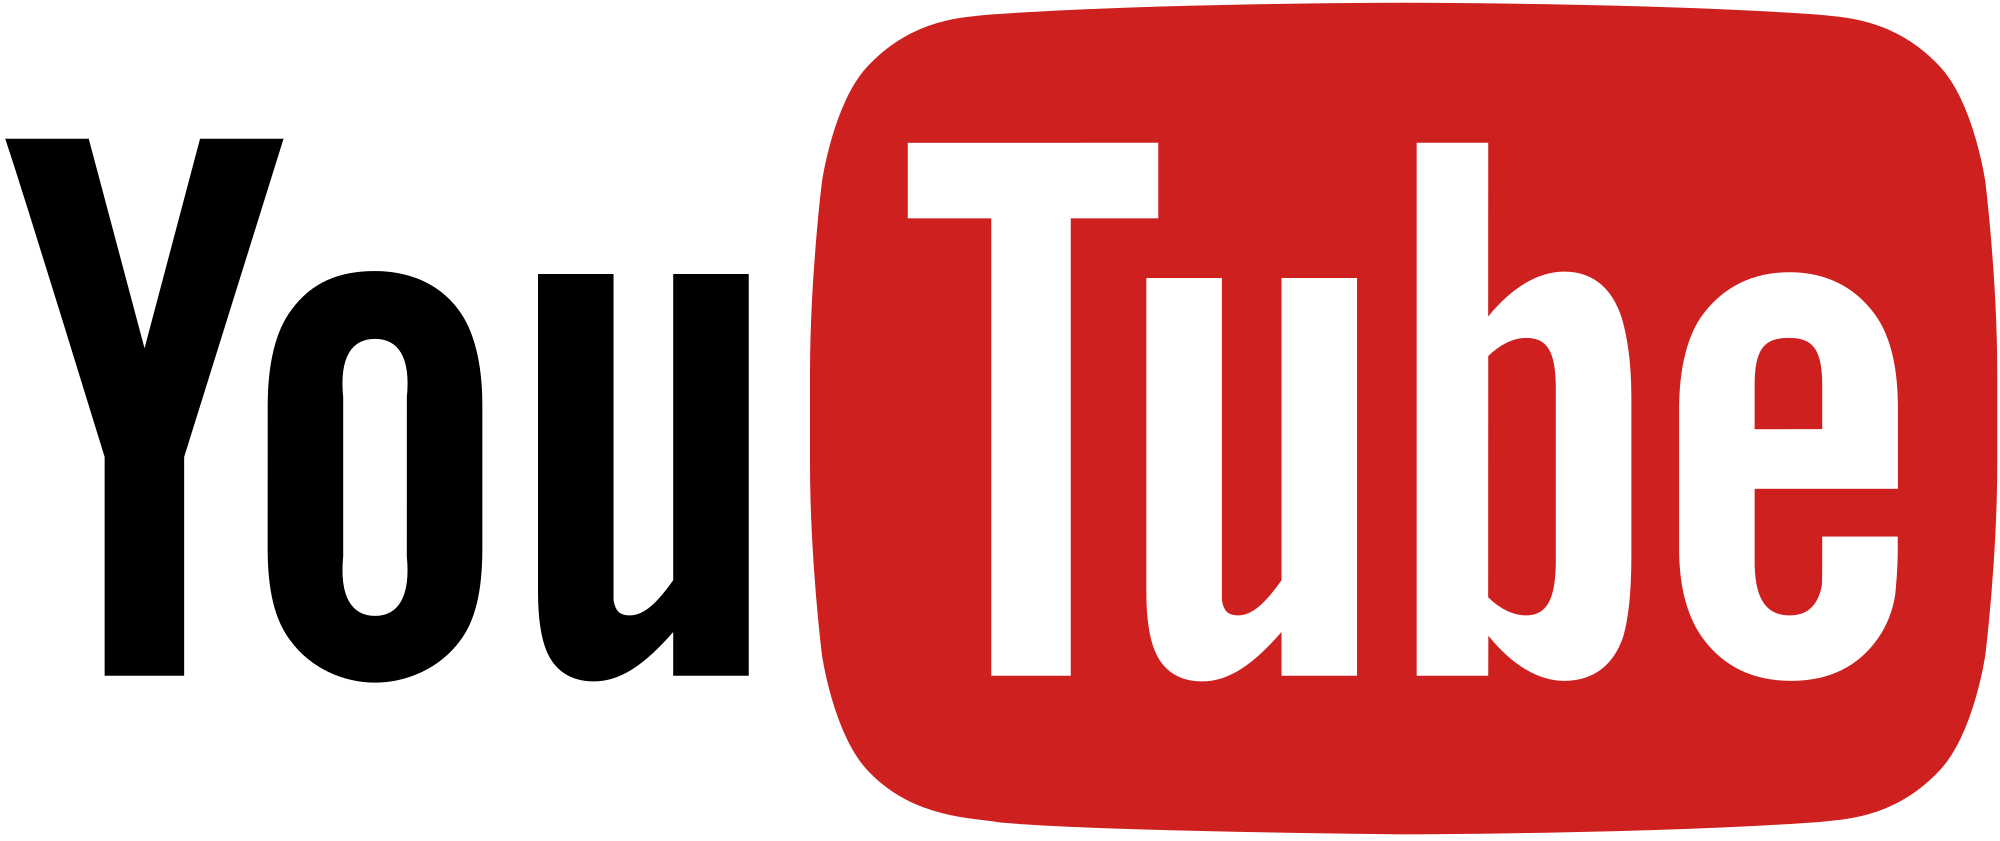 Youtube logo .png. File of svg wikimedia